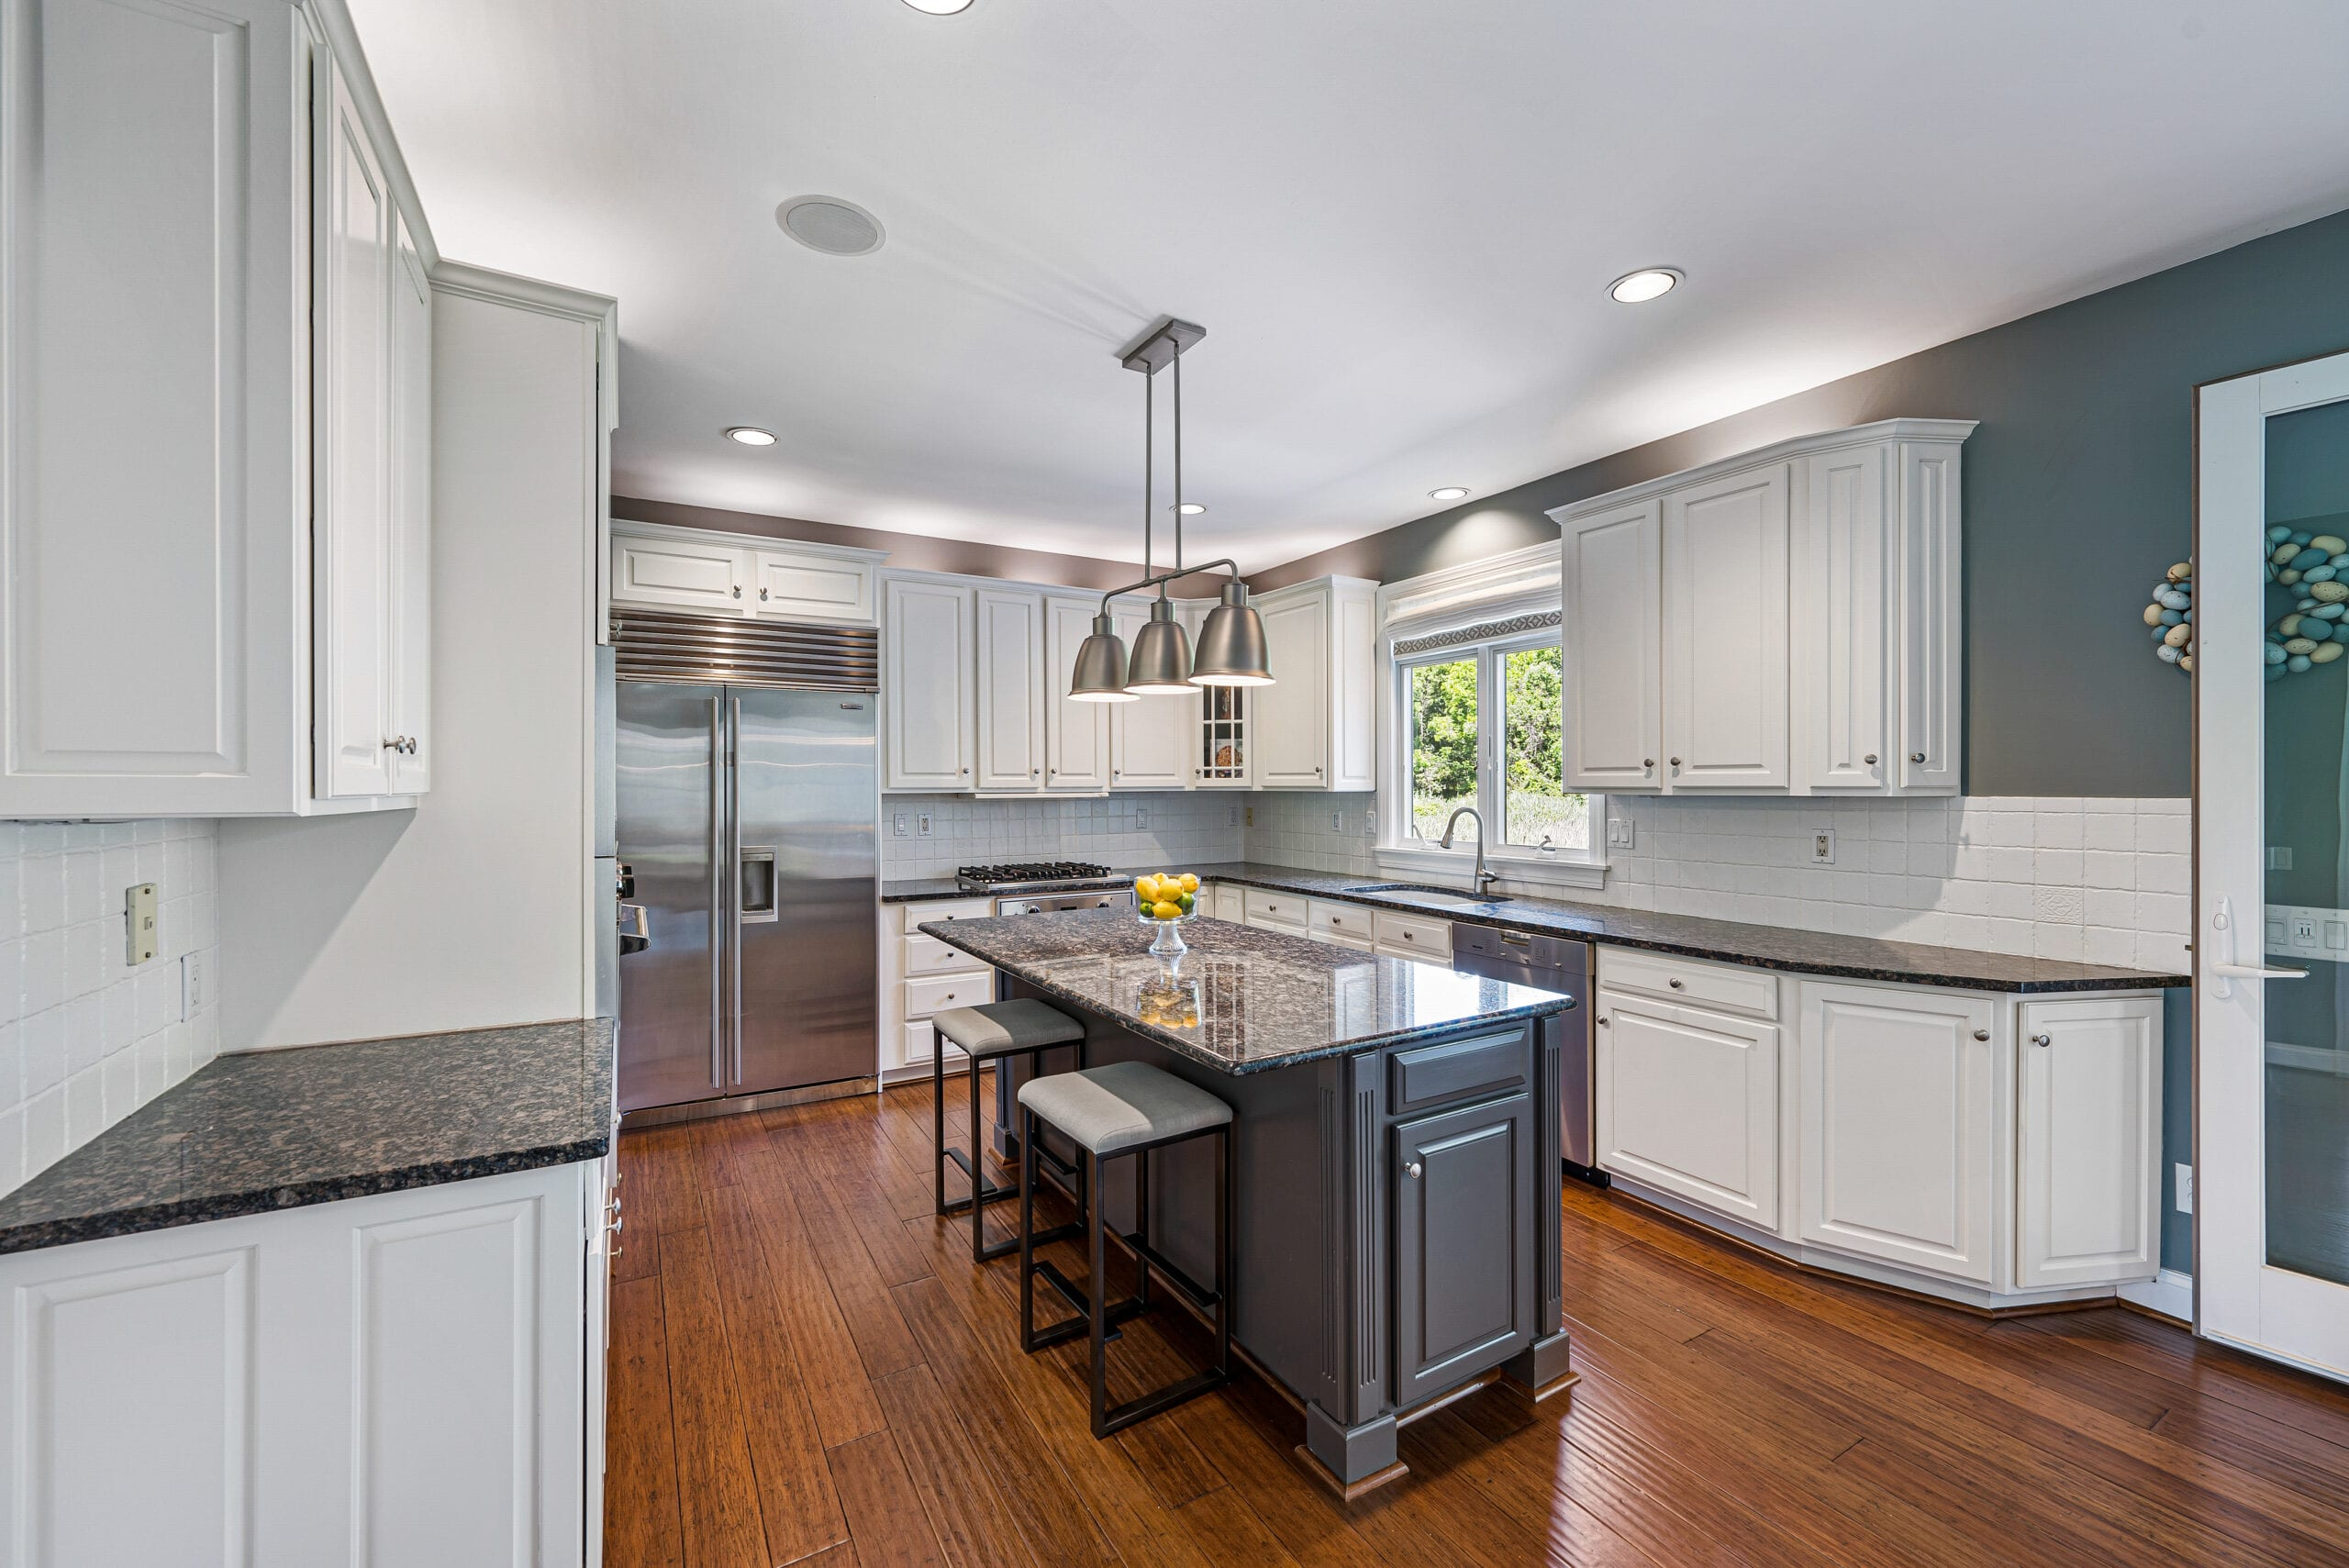 Chester County Real Estate Photography of a high end kitchen